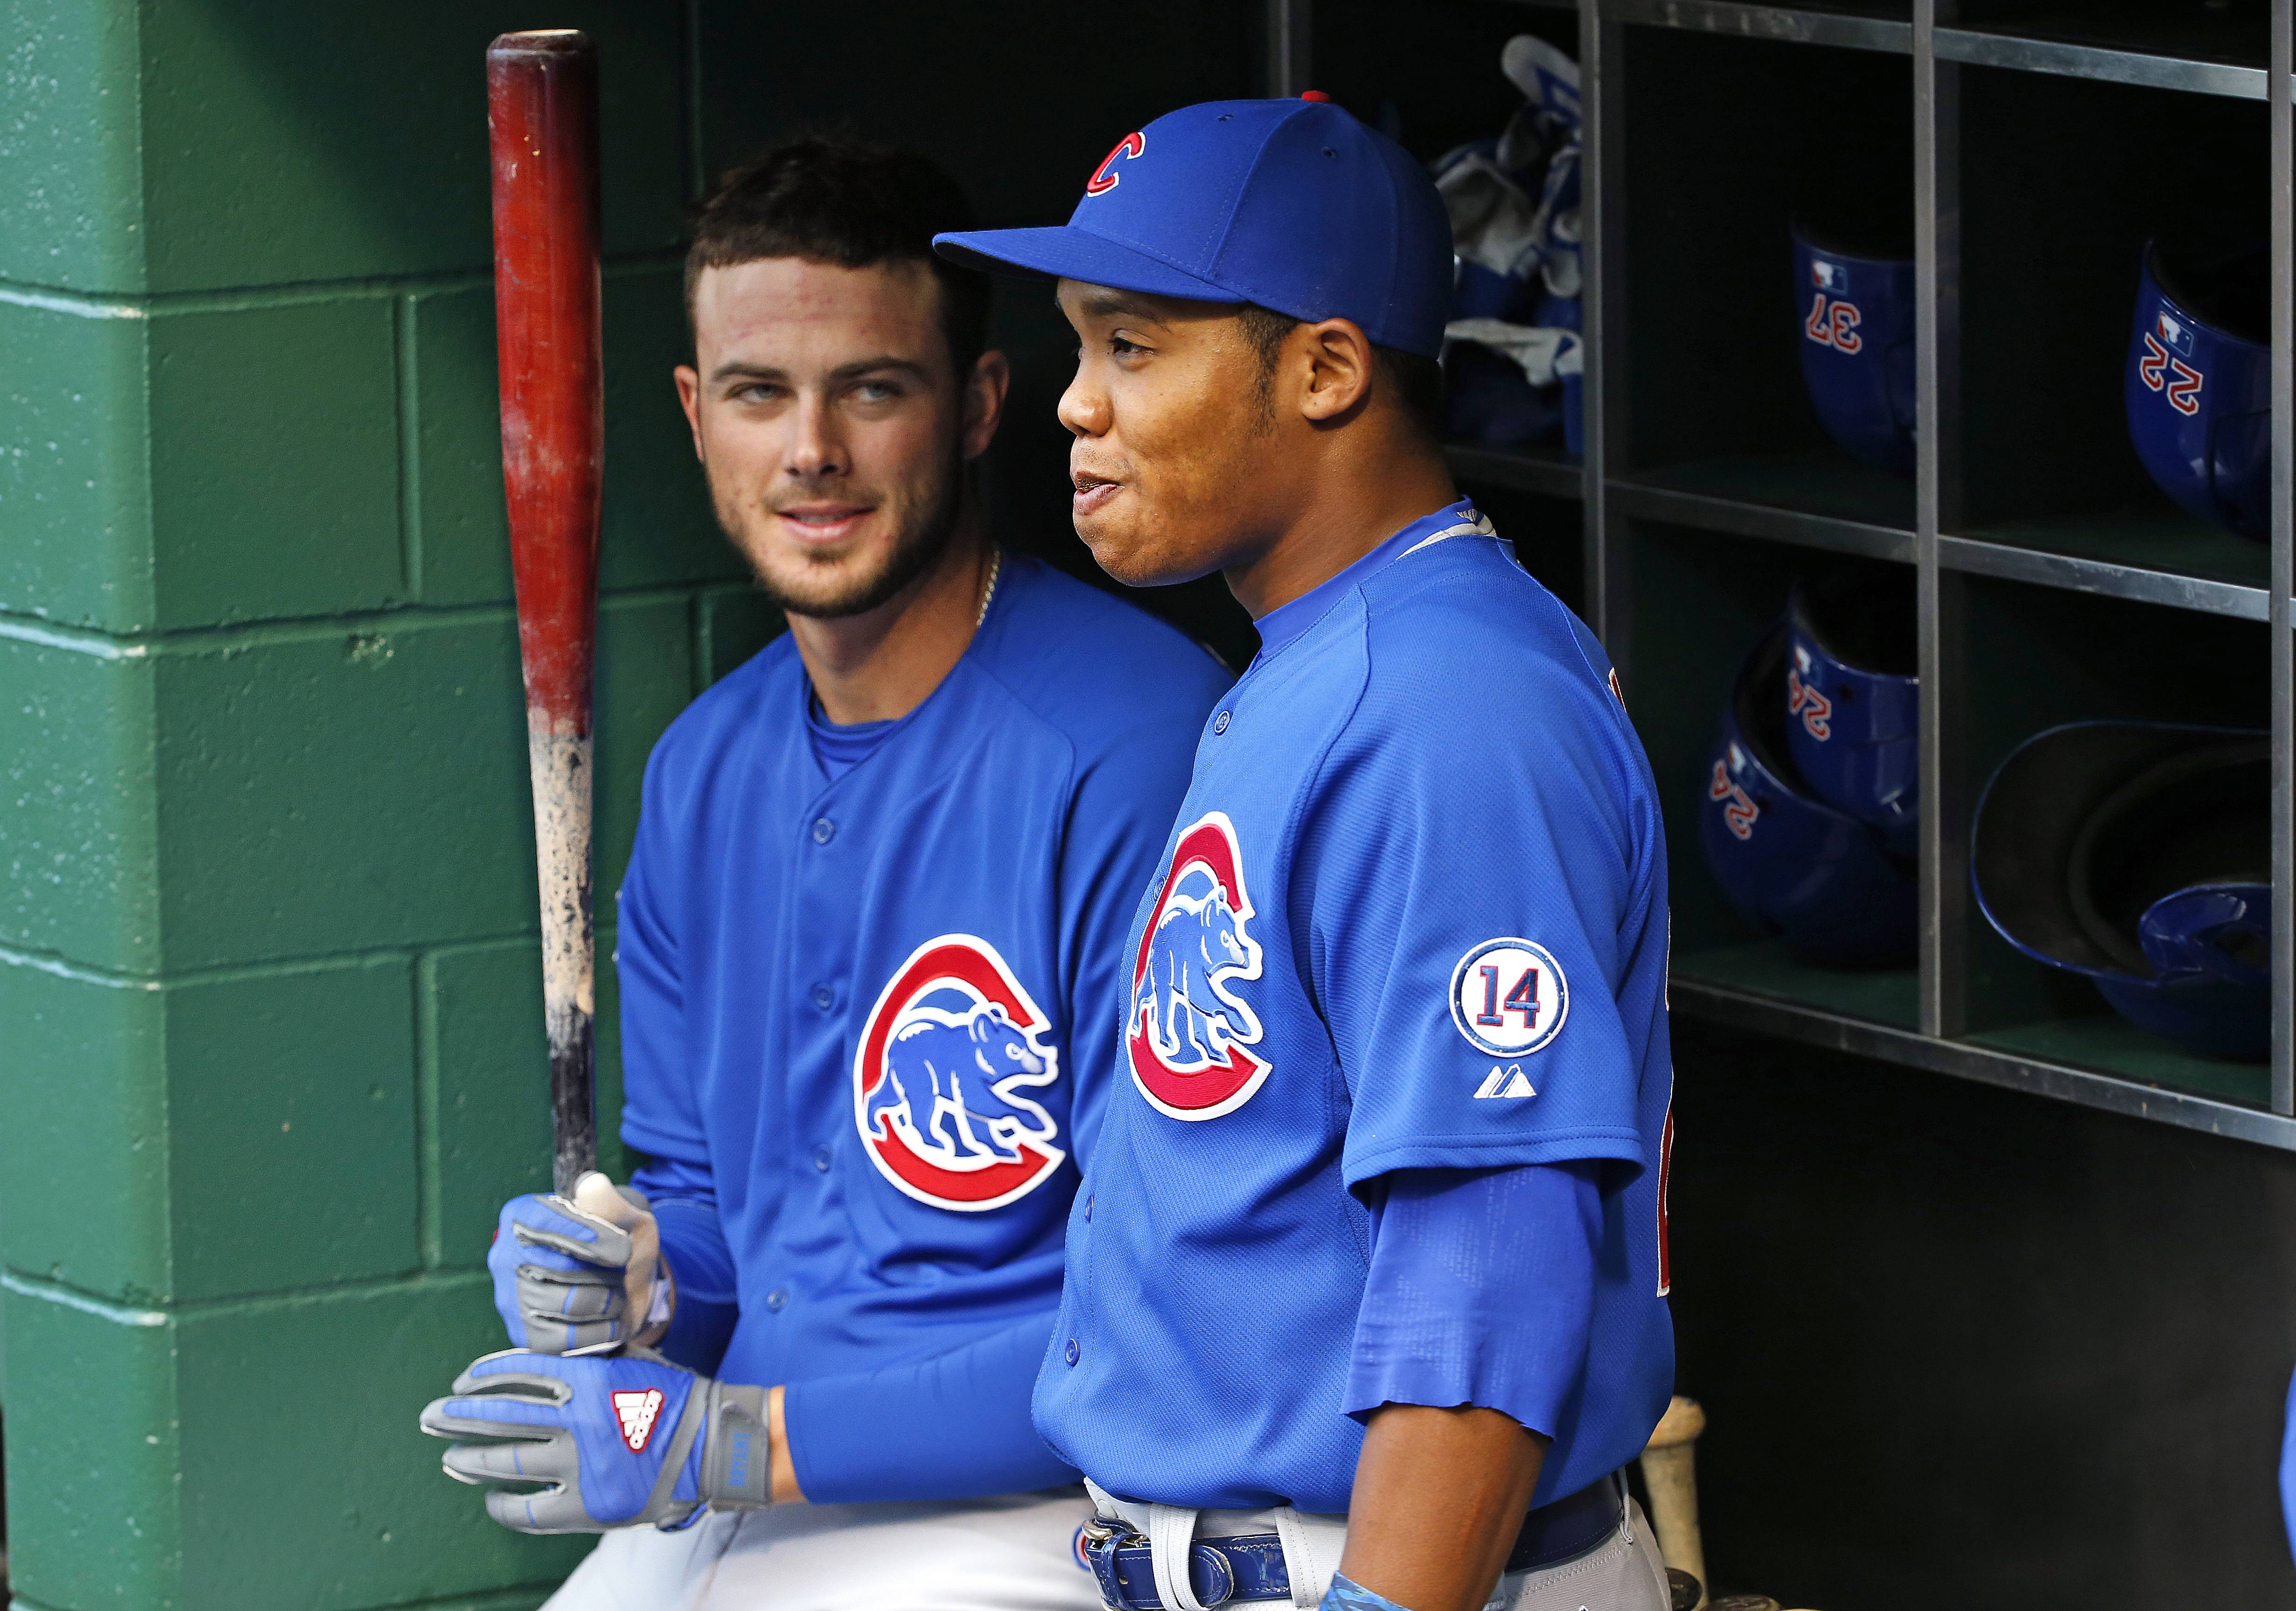 The Cubs' Addison Russell, right, now chews gum, not tobacco.